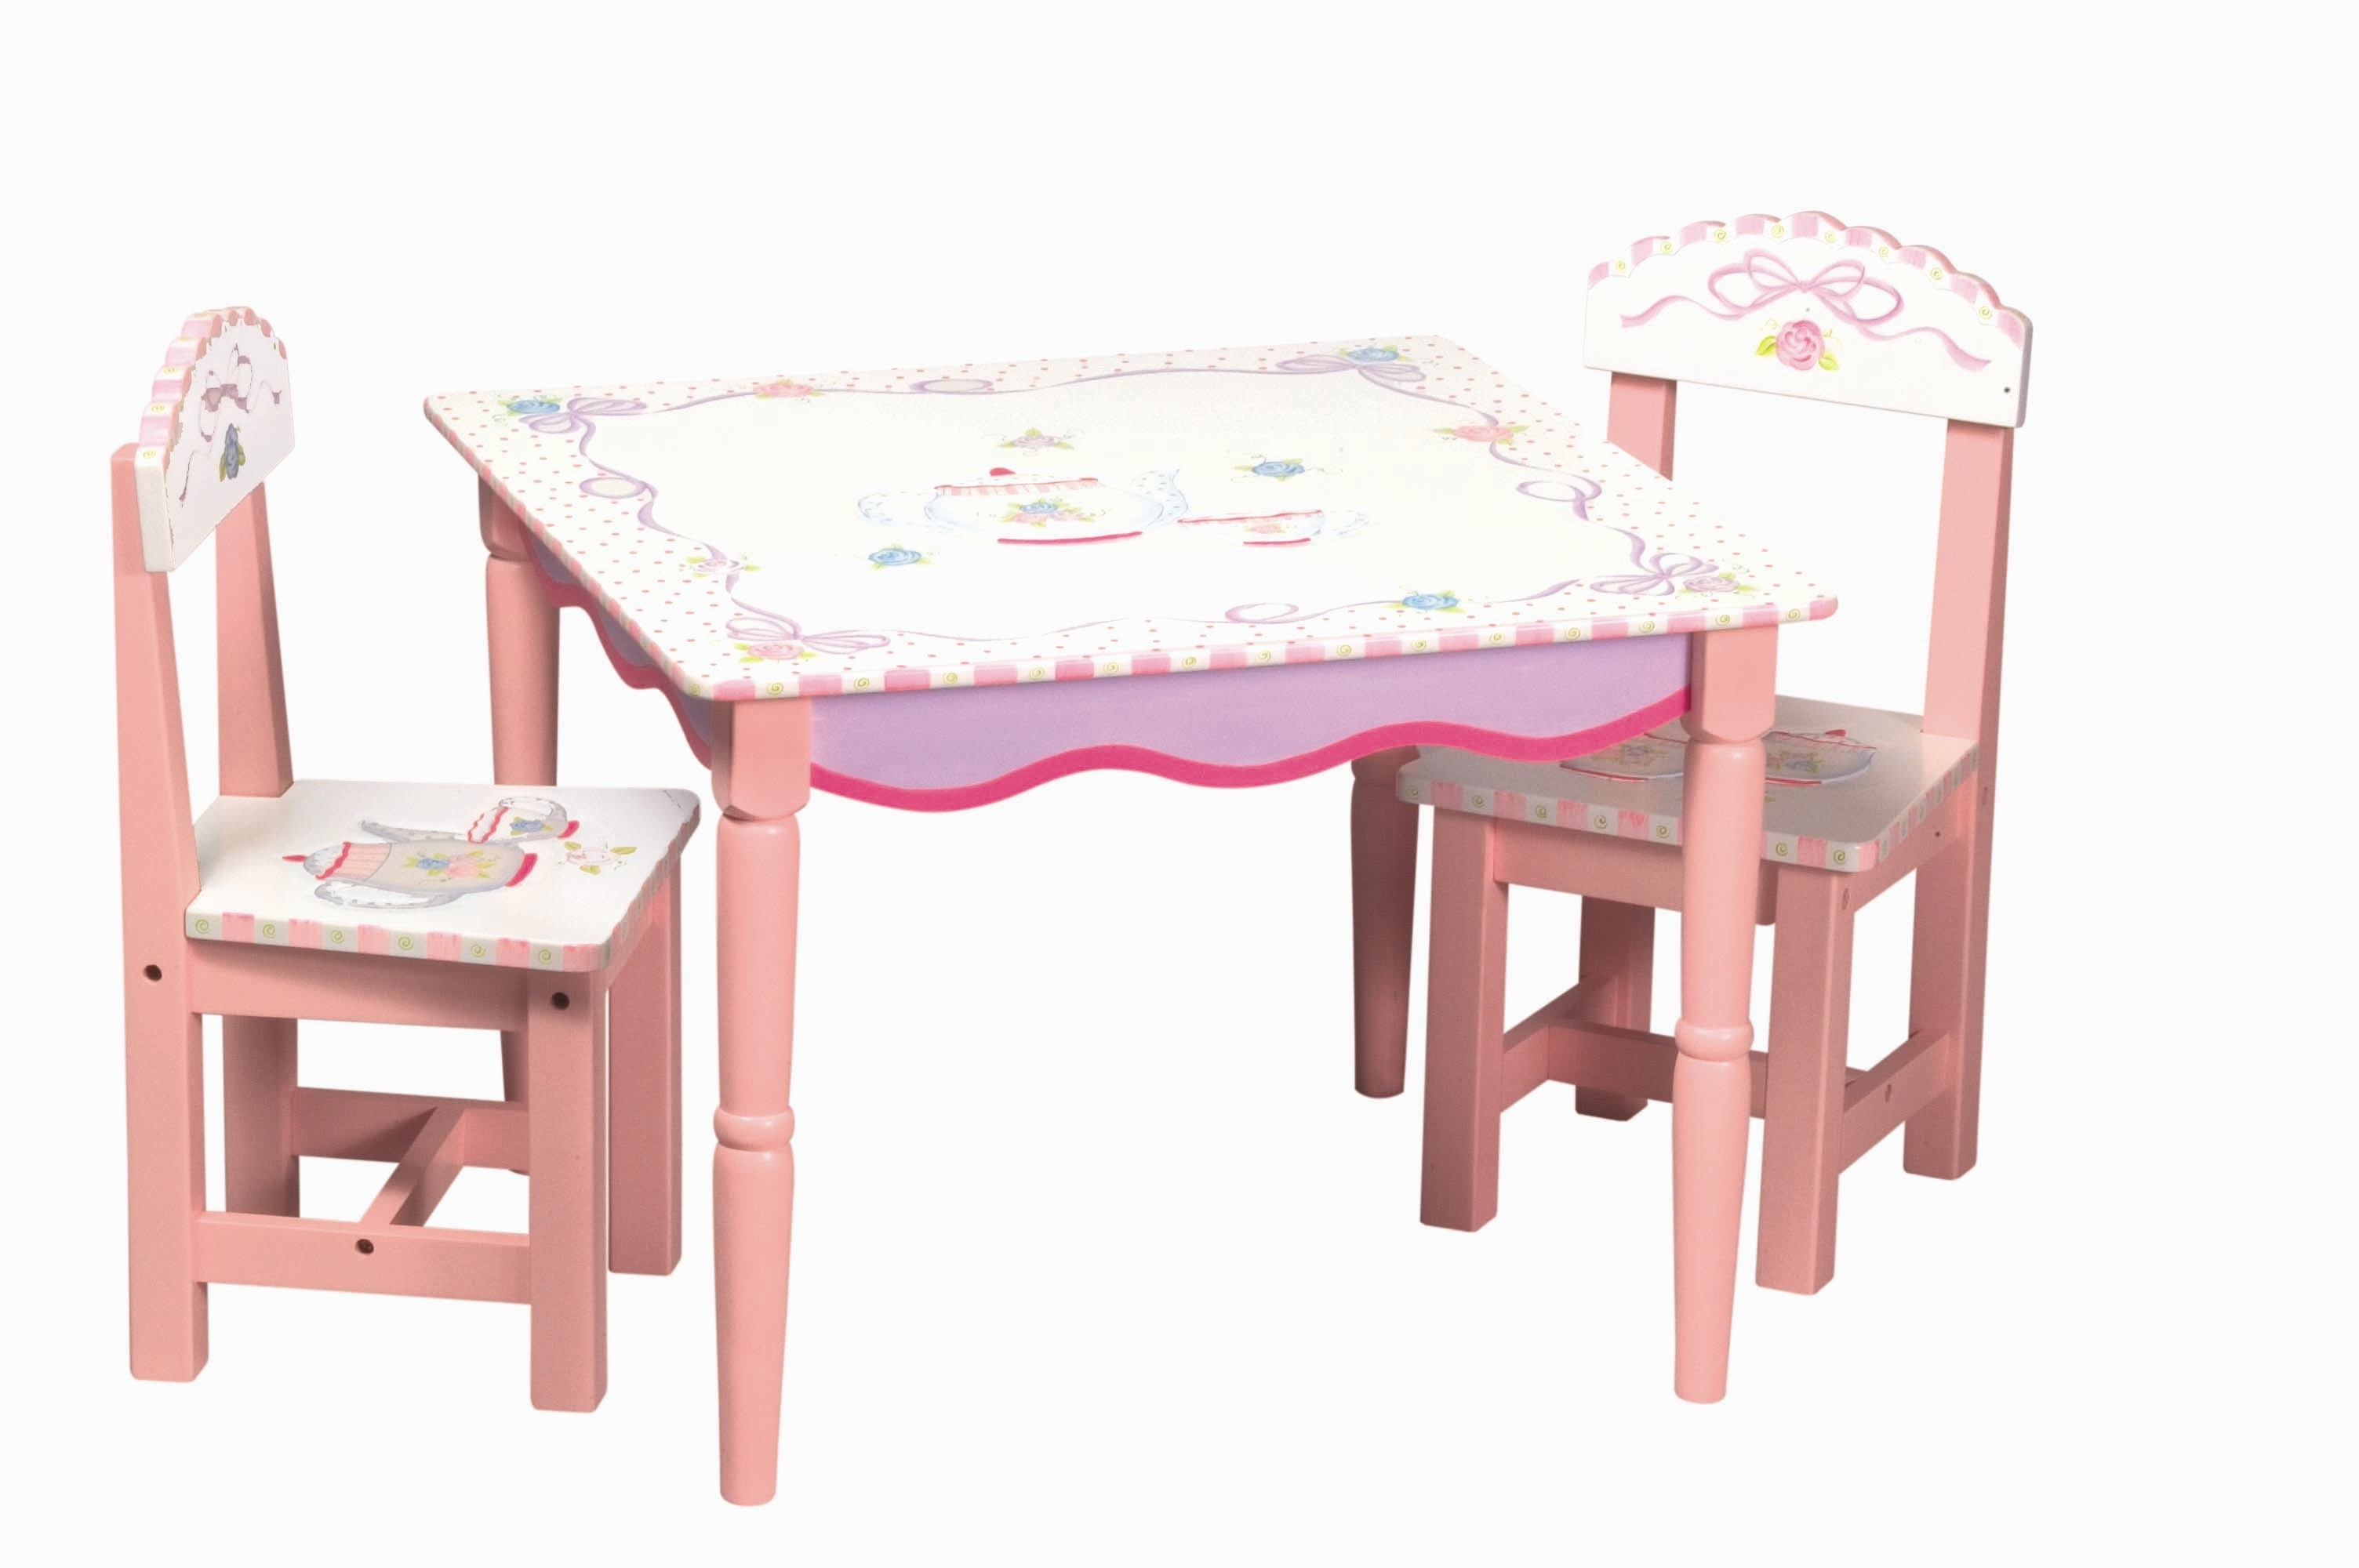 Kids Wooden Table And Chairs Set Chairs Seating  sc 1 st  Castrophotos & Childrens Table And Chair Set Plastic - Castrophotos